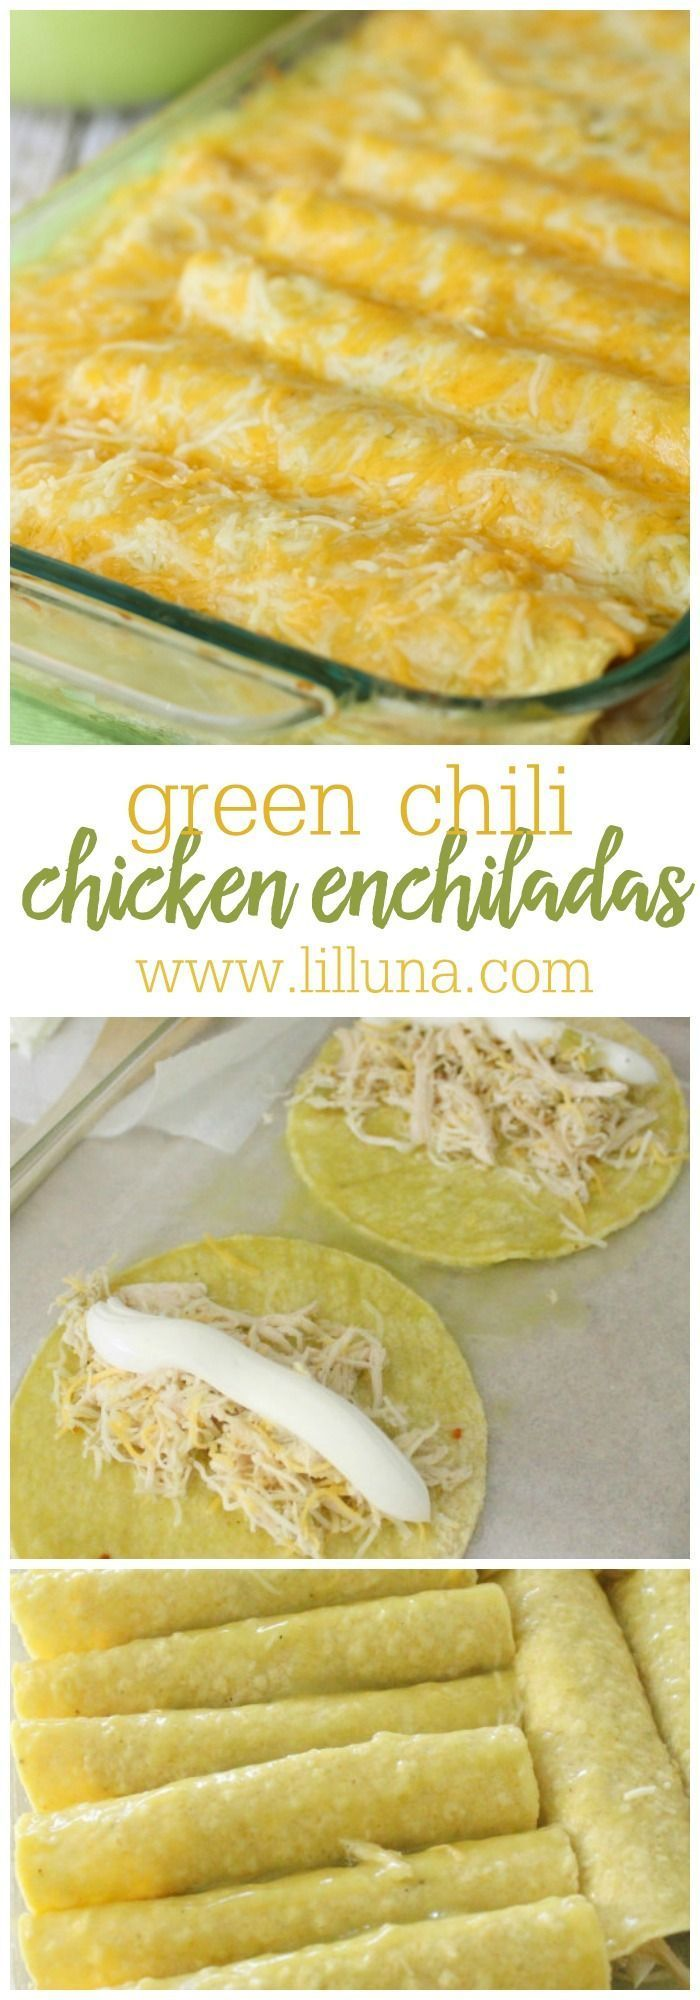 Chicken Enchilada Las Palmas Chicken Enchiladas - such an easy and delicious recipe! Includes shredded chicken, green chili, sour cream, and cheese all wrapped up in a tortilla! SO YUMMY!Las Palmas Chicken Enchiladas - such an easy and delicious recipe! Includes shredded chicken, green chili, sour cream, and cheese all wrapped up in a tortilla! SO YUMMY!